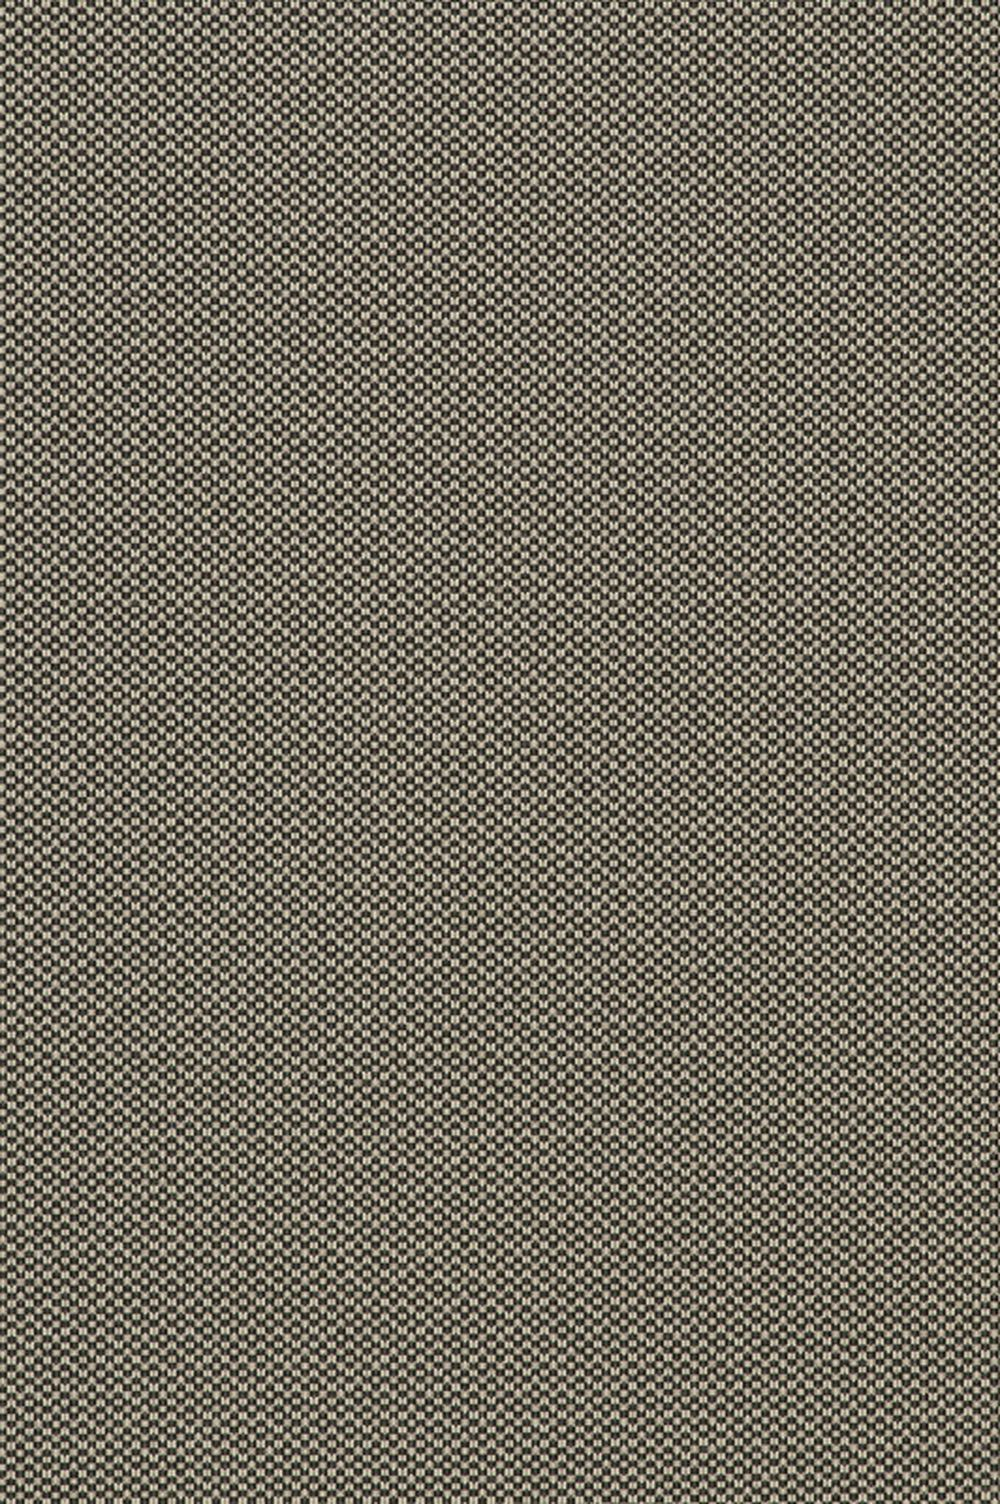 Photo of the fabric Zellij Graphite 883 swatch by Mokum. Use for Upholstery Heavy Duty, Accessory. Style of Plain